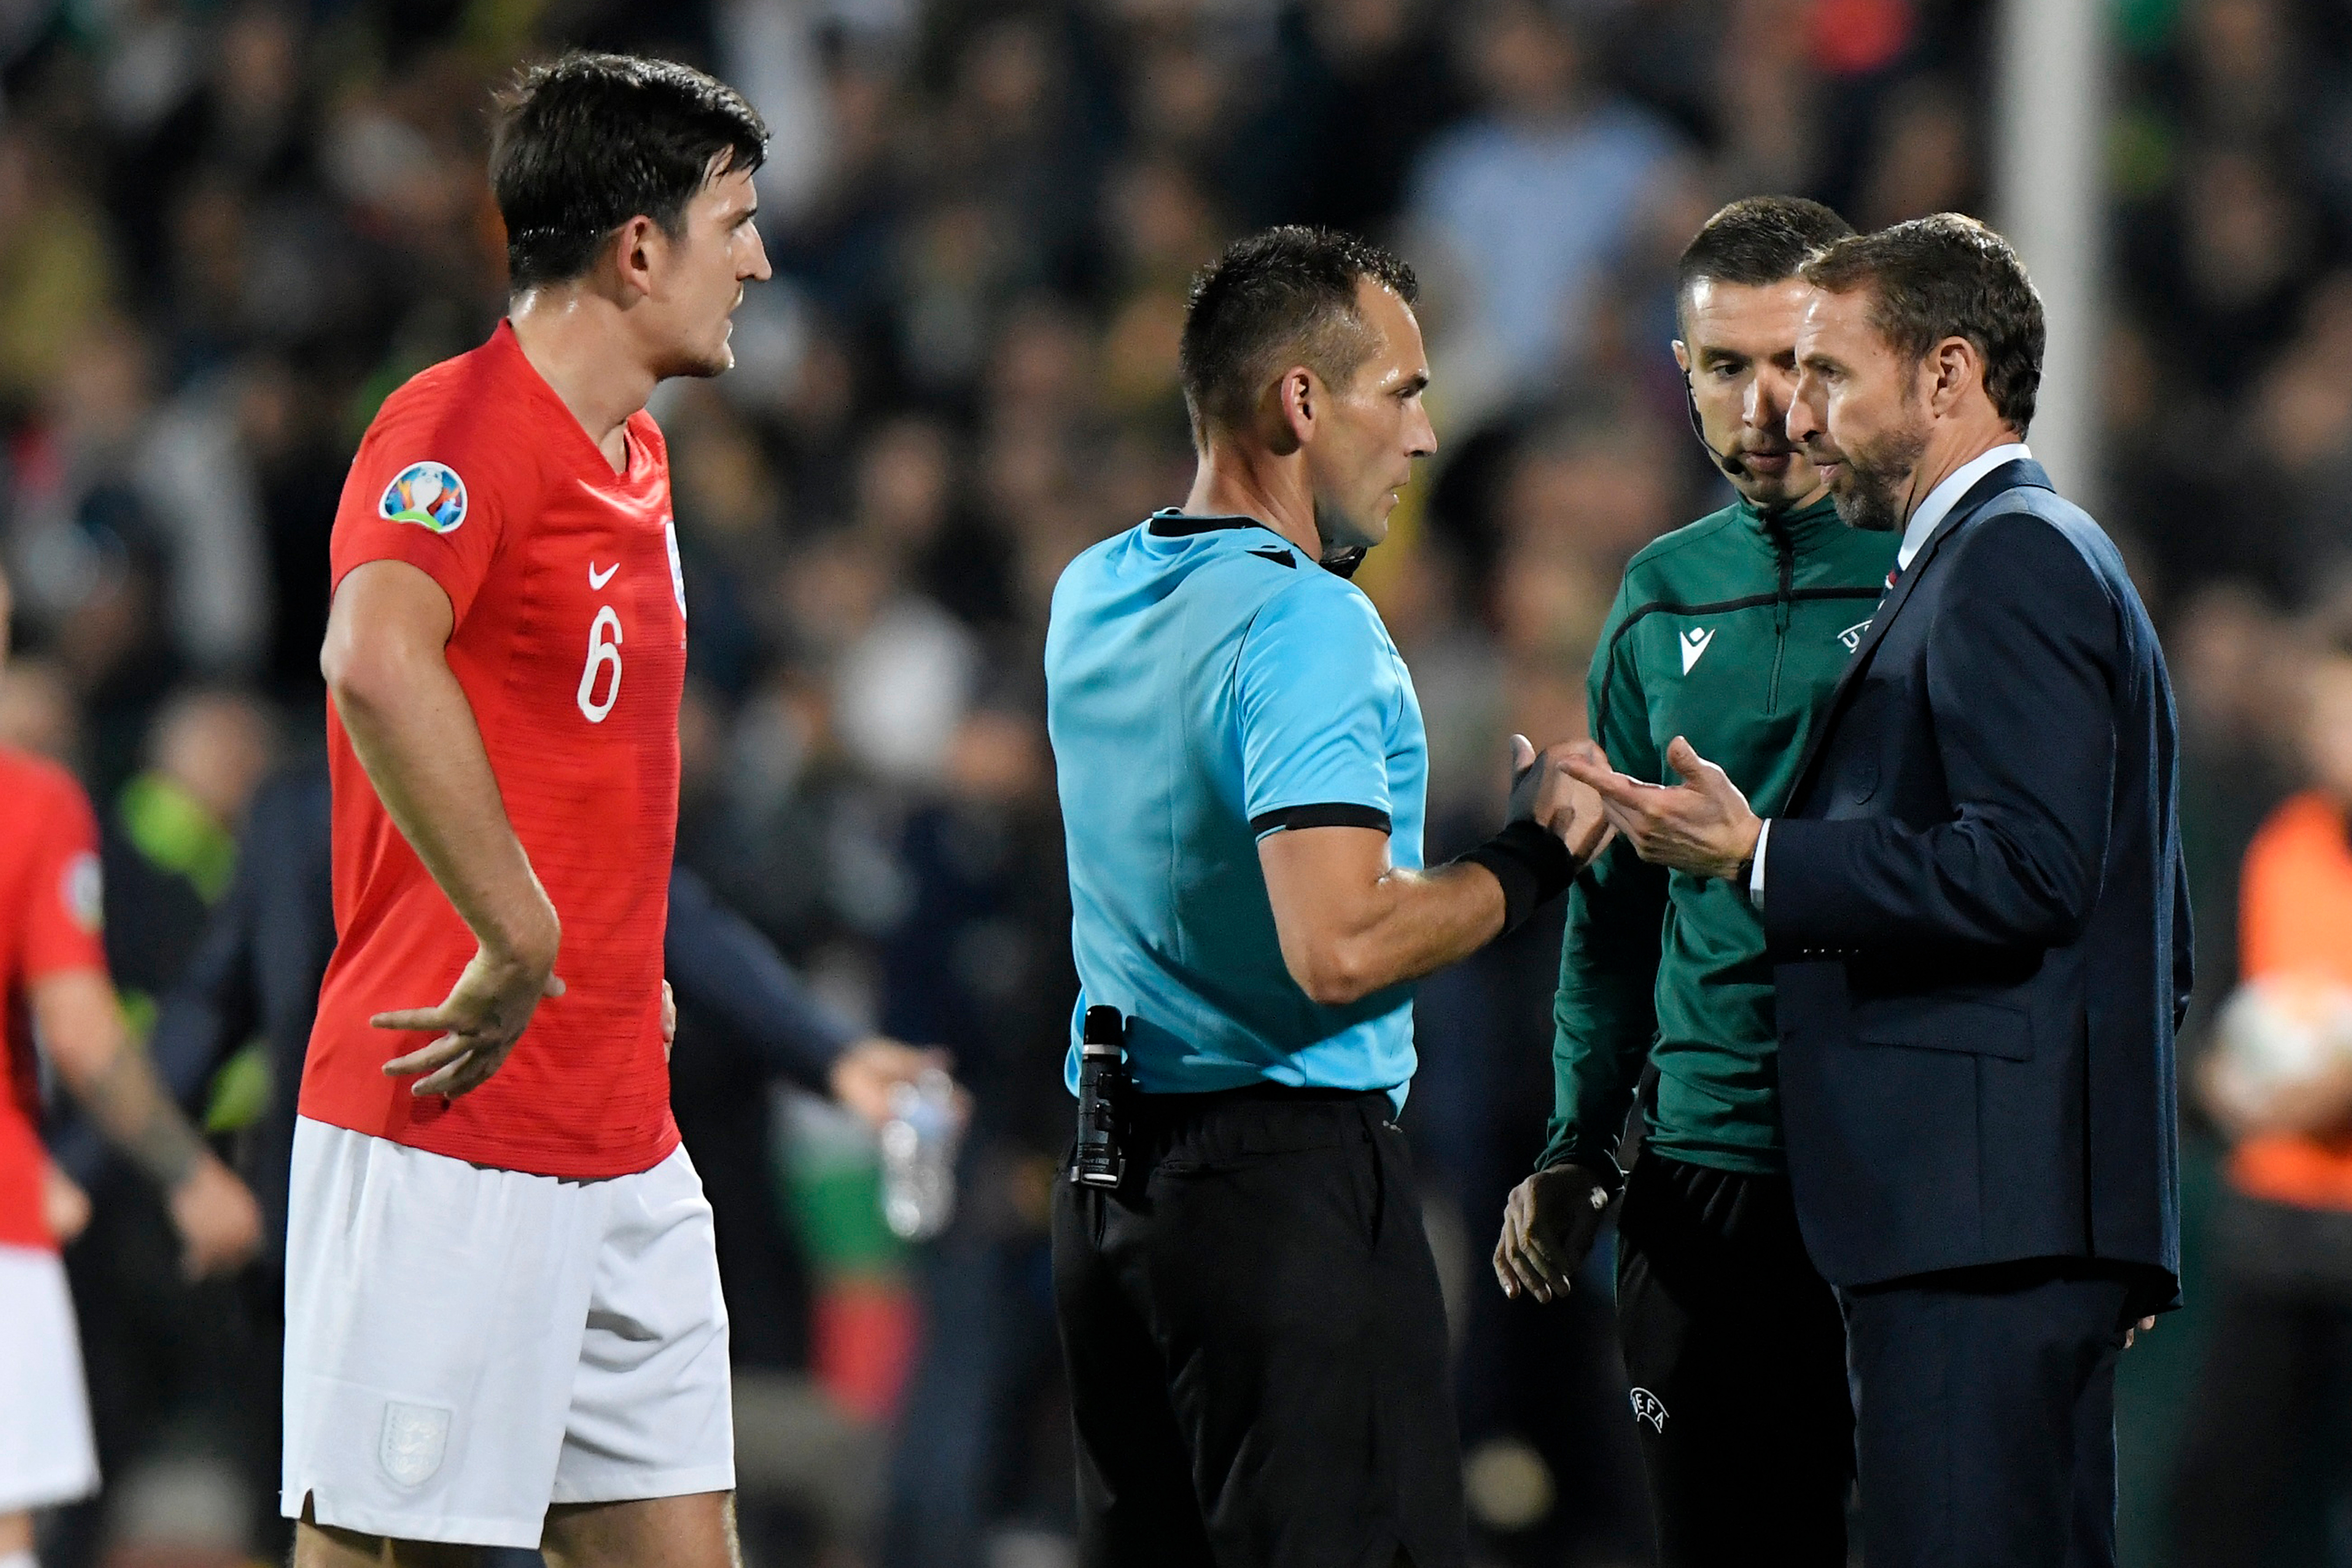 Southgate chats to the referee and Uefa delegate after racist chanting and Nazi salutes in Sofia